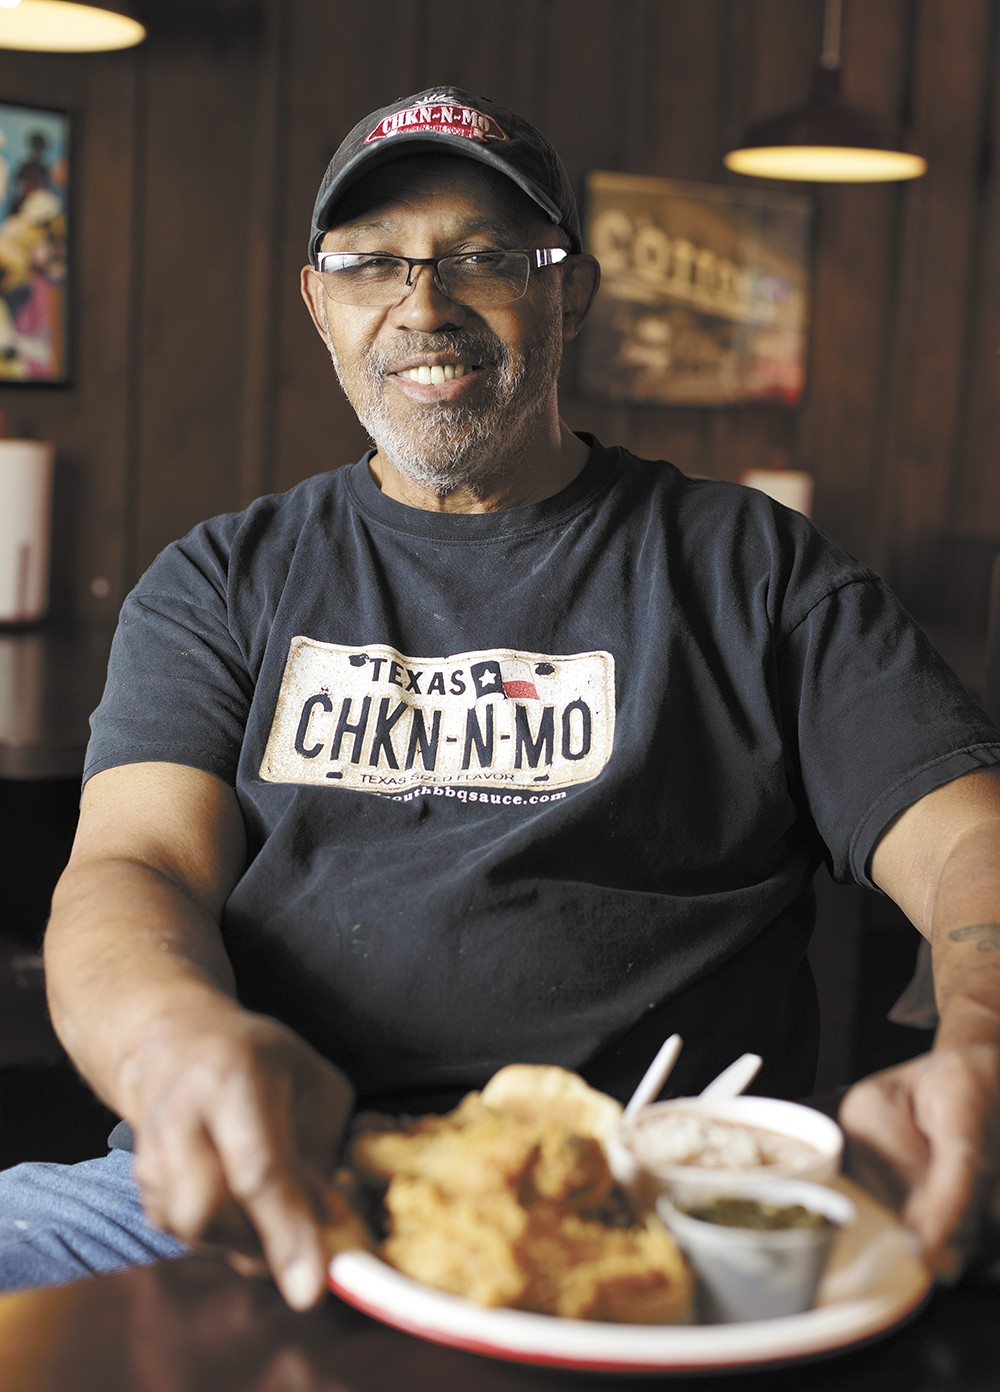 Chkn-N-Mo owner Bob Hemphill has been serving fried chicken in Spokane for 23 years. - YOUNG KWAK